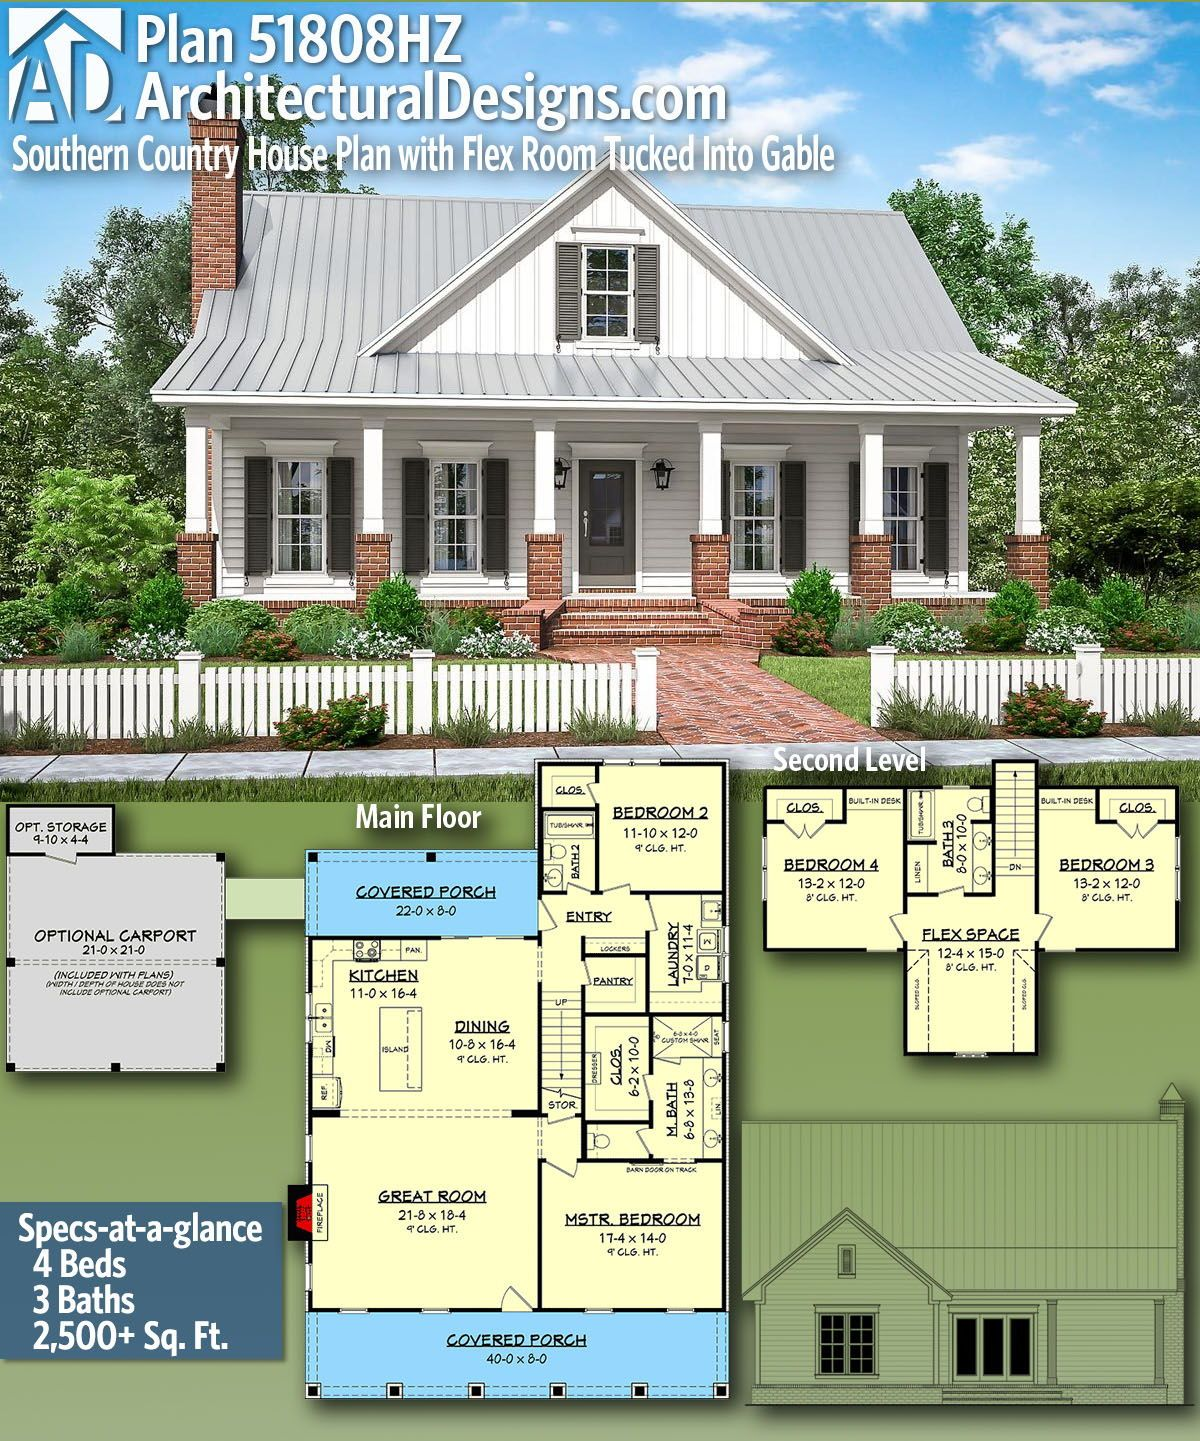 Plan 51808hz Southern Country House Plan With Flex Room Tucked Into Gable House Plans Farmhouse Country House Plan Country House Plans